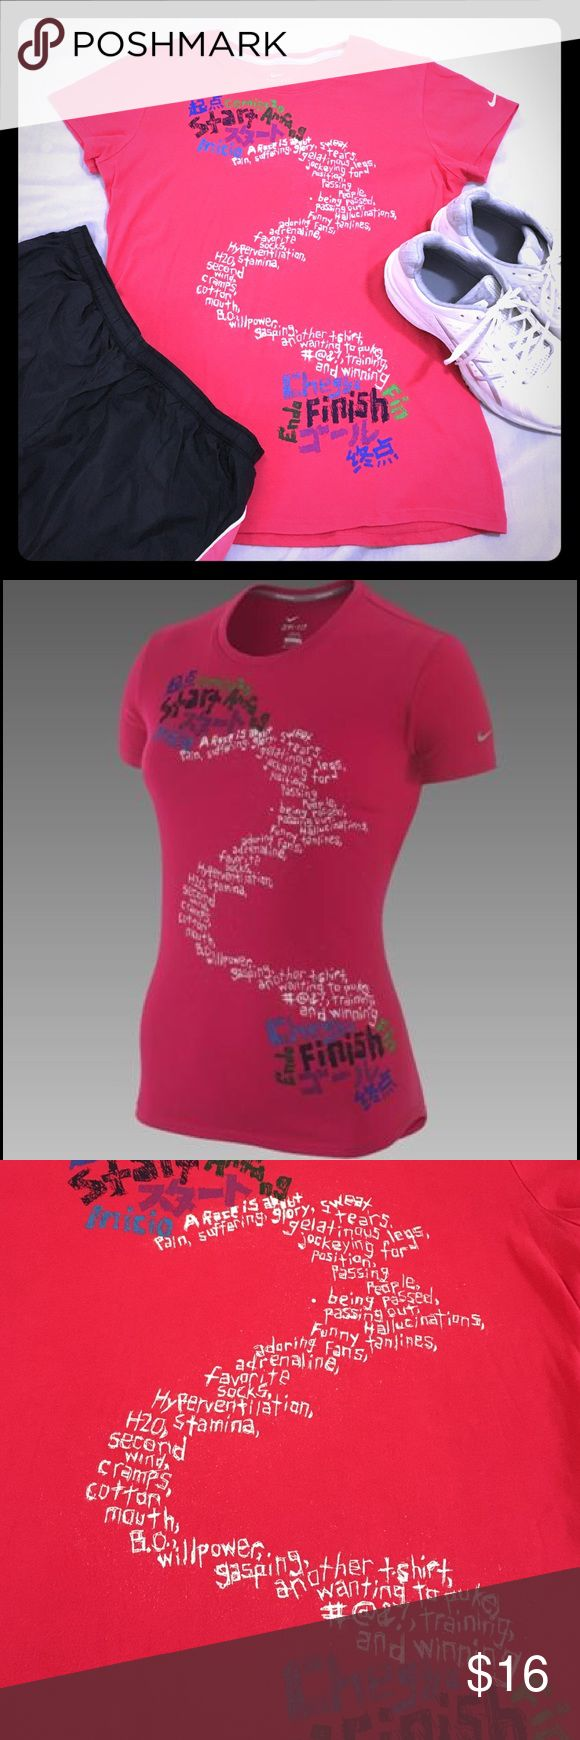 "Nike DRI-Fit Women's Inspirational Running Shirt EUC, Raspberry Red color, Saying: ""Start A race is about pain, suffering, glory, sweat, tears, gelatinous legs, jokeying for position, passing people, being passed, passing out, halucinations, funny tan lines, adoring fans, adrenaline, favourite socks, hyperventalation, H20, stamina, second wind, cramps, cotton mouth, B.O, willpower, gasping, another t shirt, wanting to puke, #@&!, training and winning!  Finish"" Nike Tops Tees - Short Sleeve"